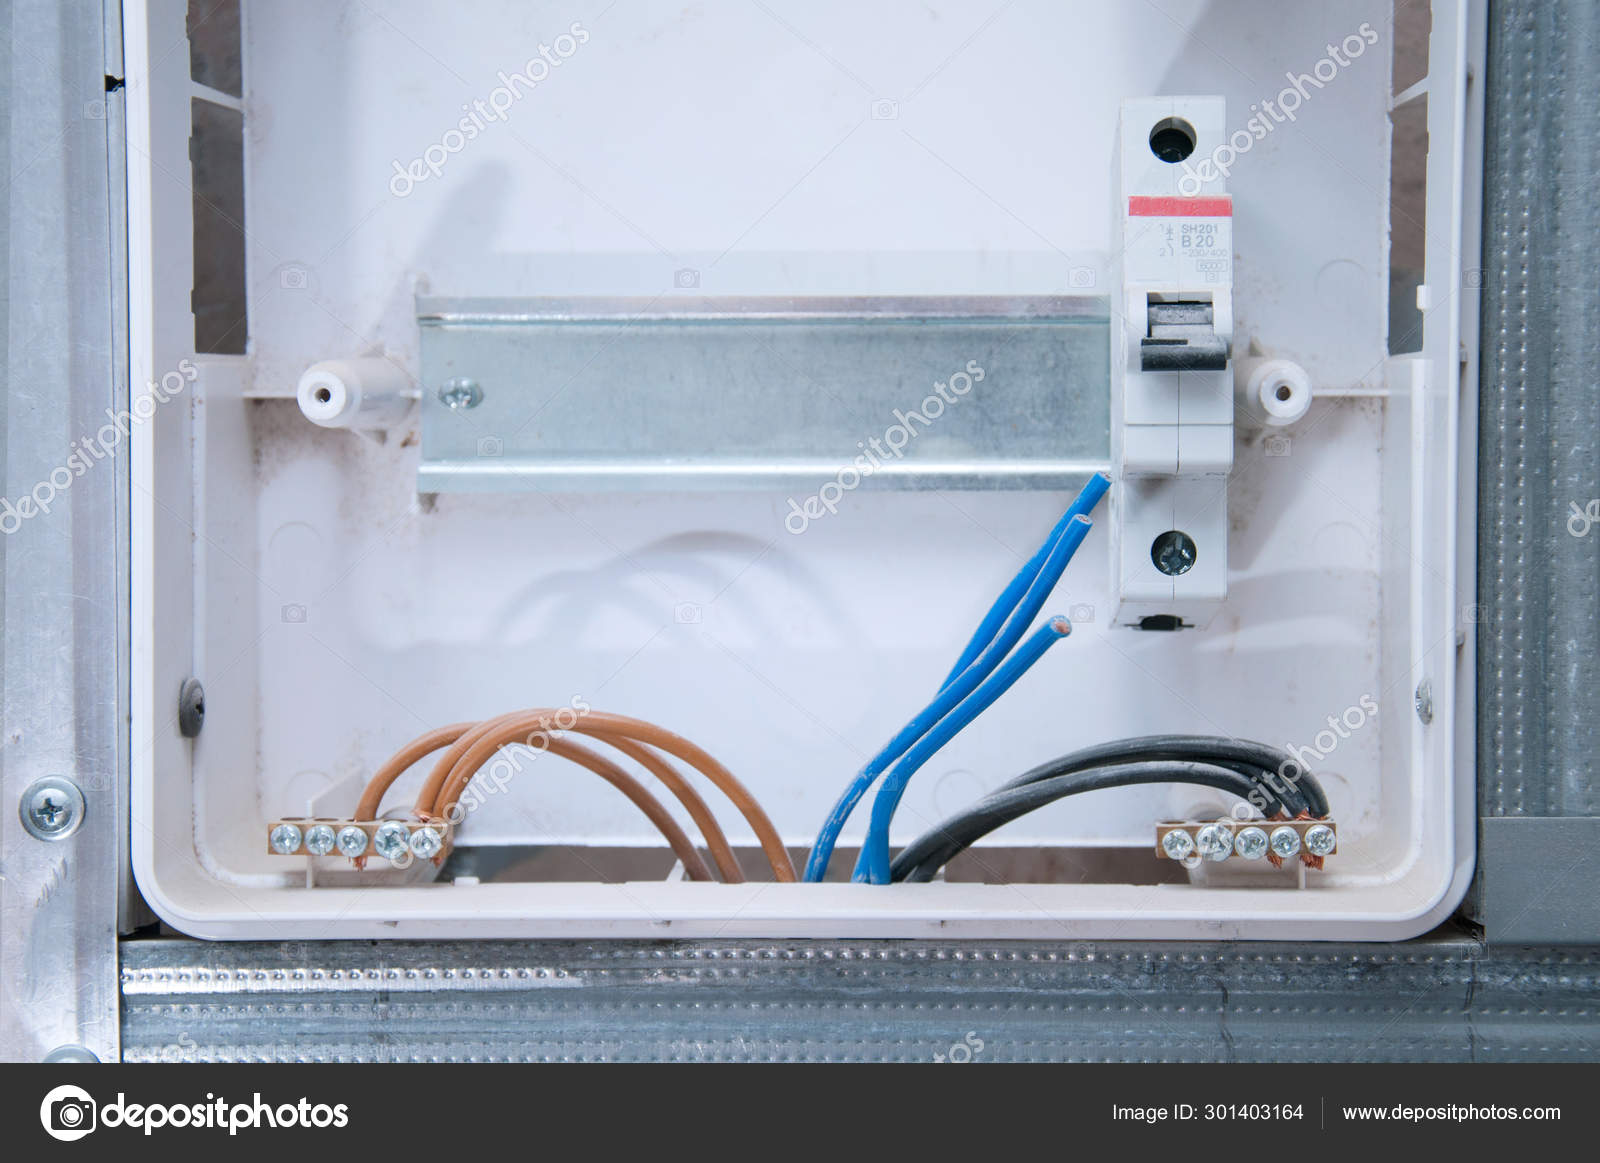 [DIAGRAM_4PO]  Electrical Wiring House Guard Machine Guns Wired Cables Safe Cabling —  Stock Photo © Dekol #301403164 | House Wiring Machine |  | Depositphotos